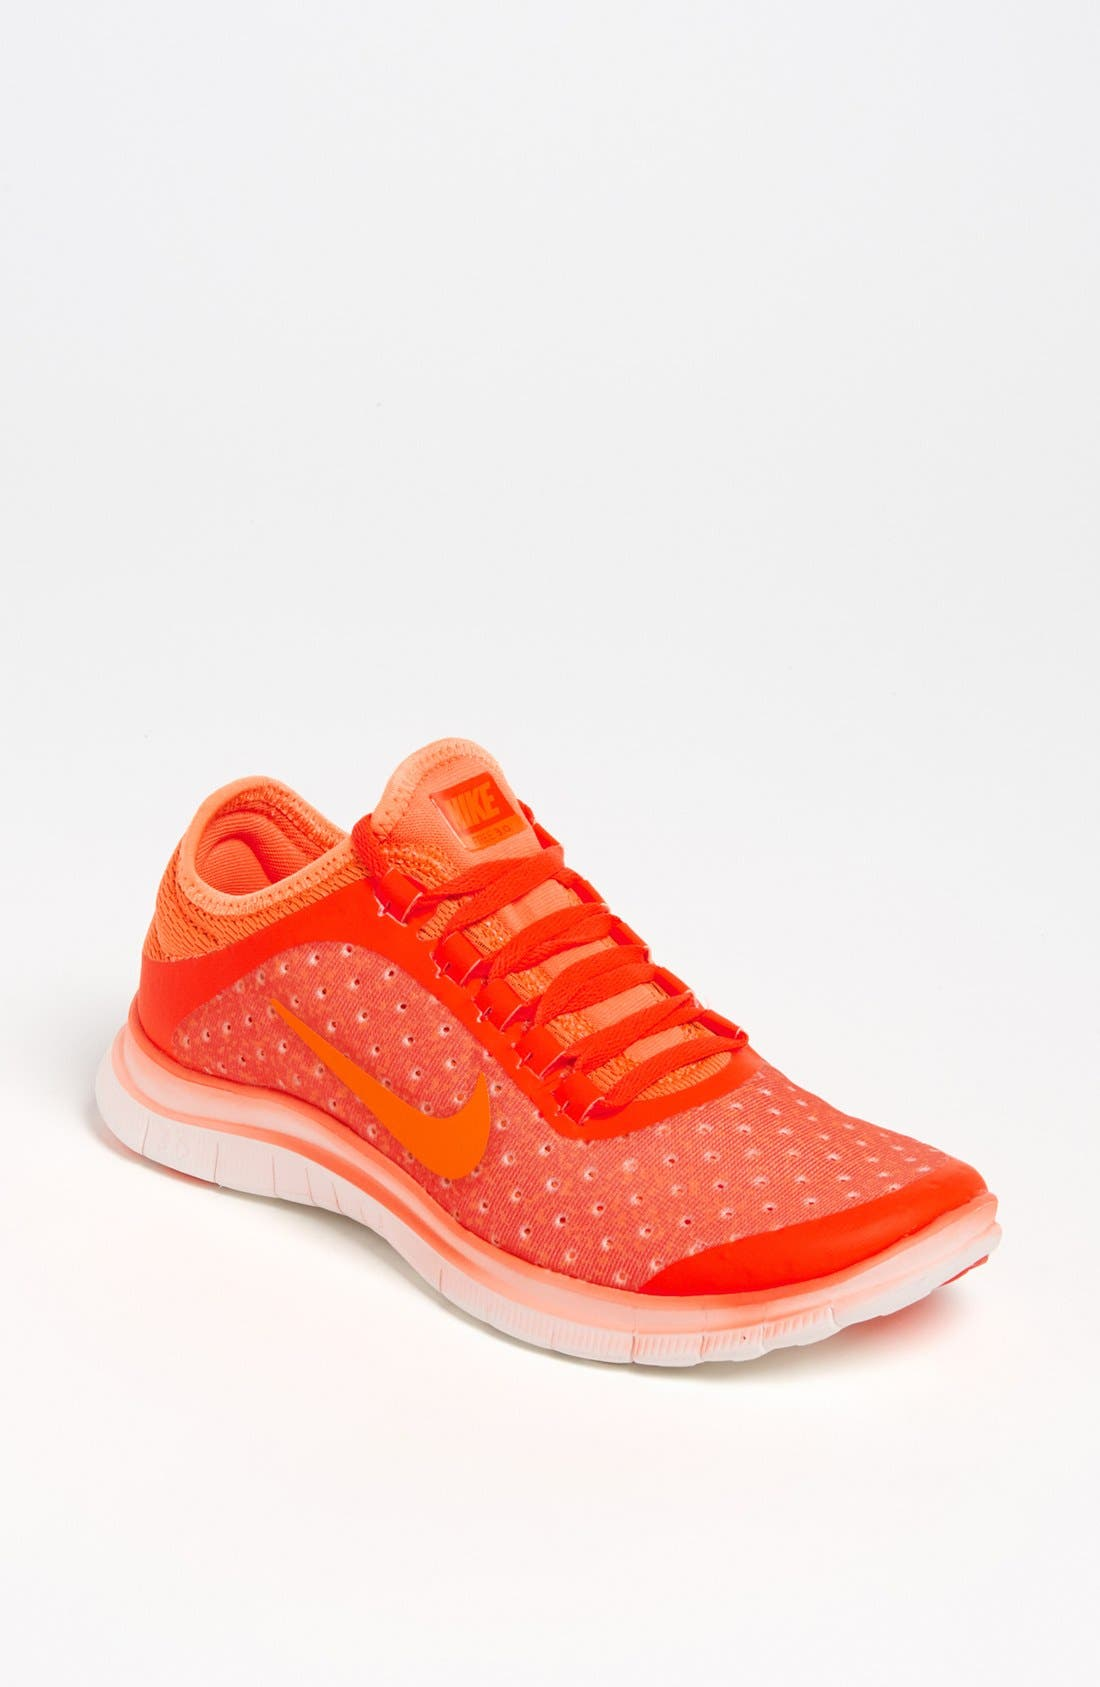 Alternate Image 1 Selected - Nike 'Free 3.0 v5' Sneaker (Women)